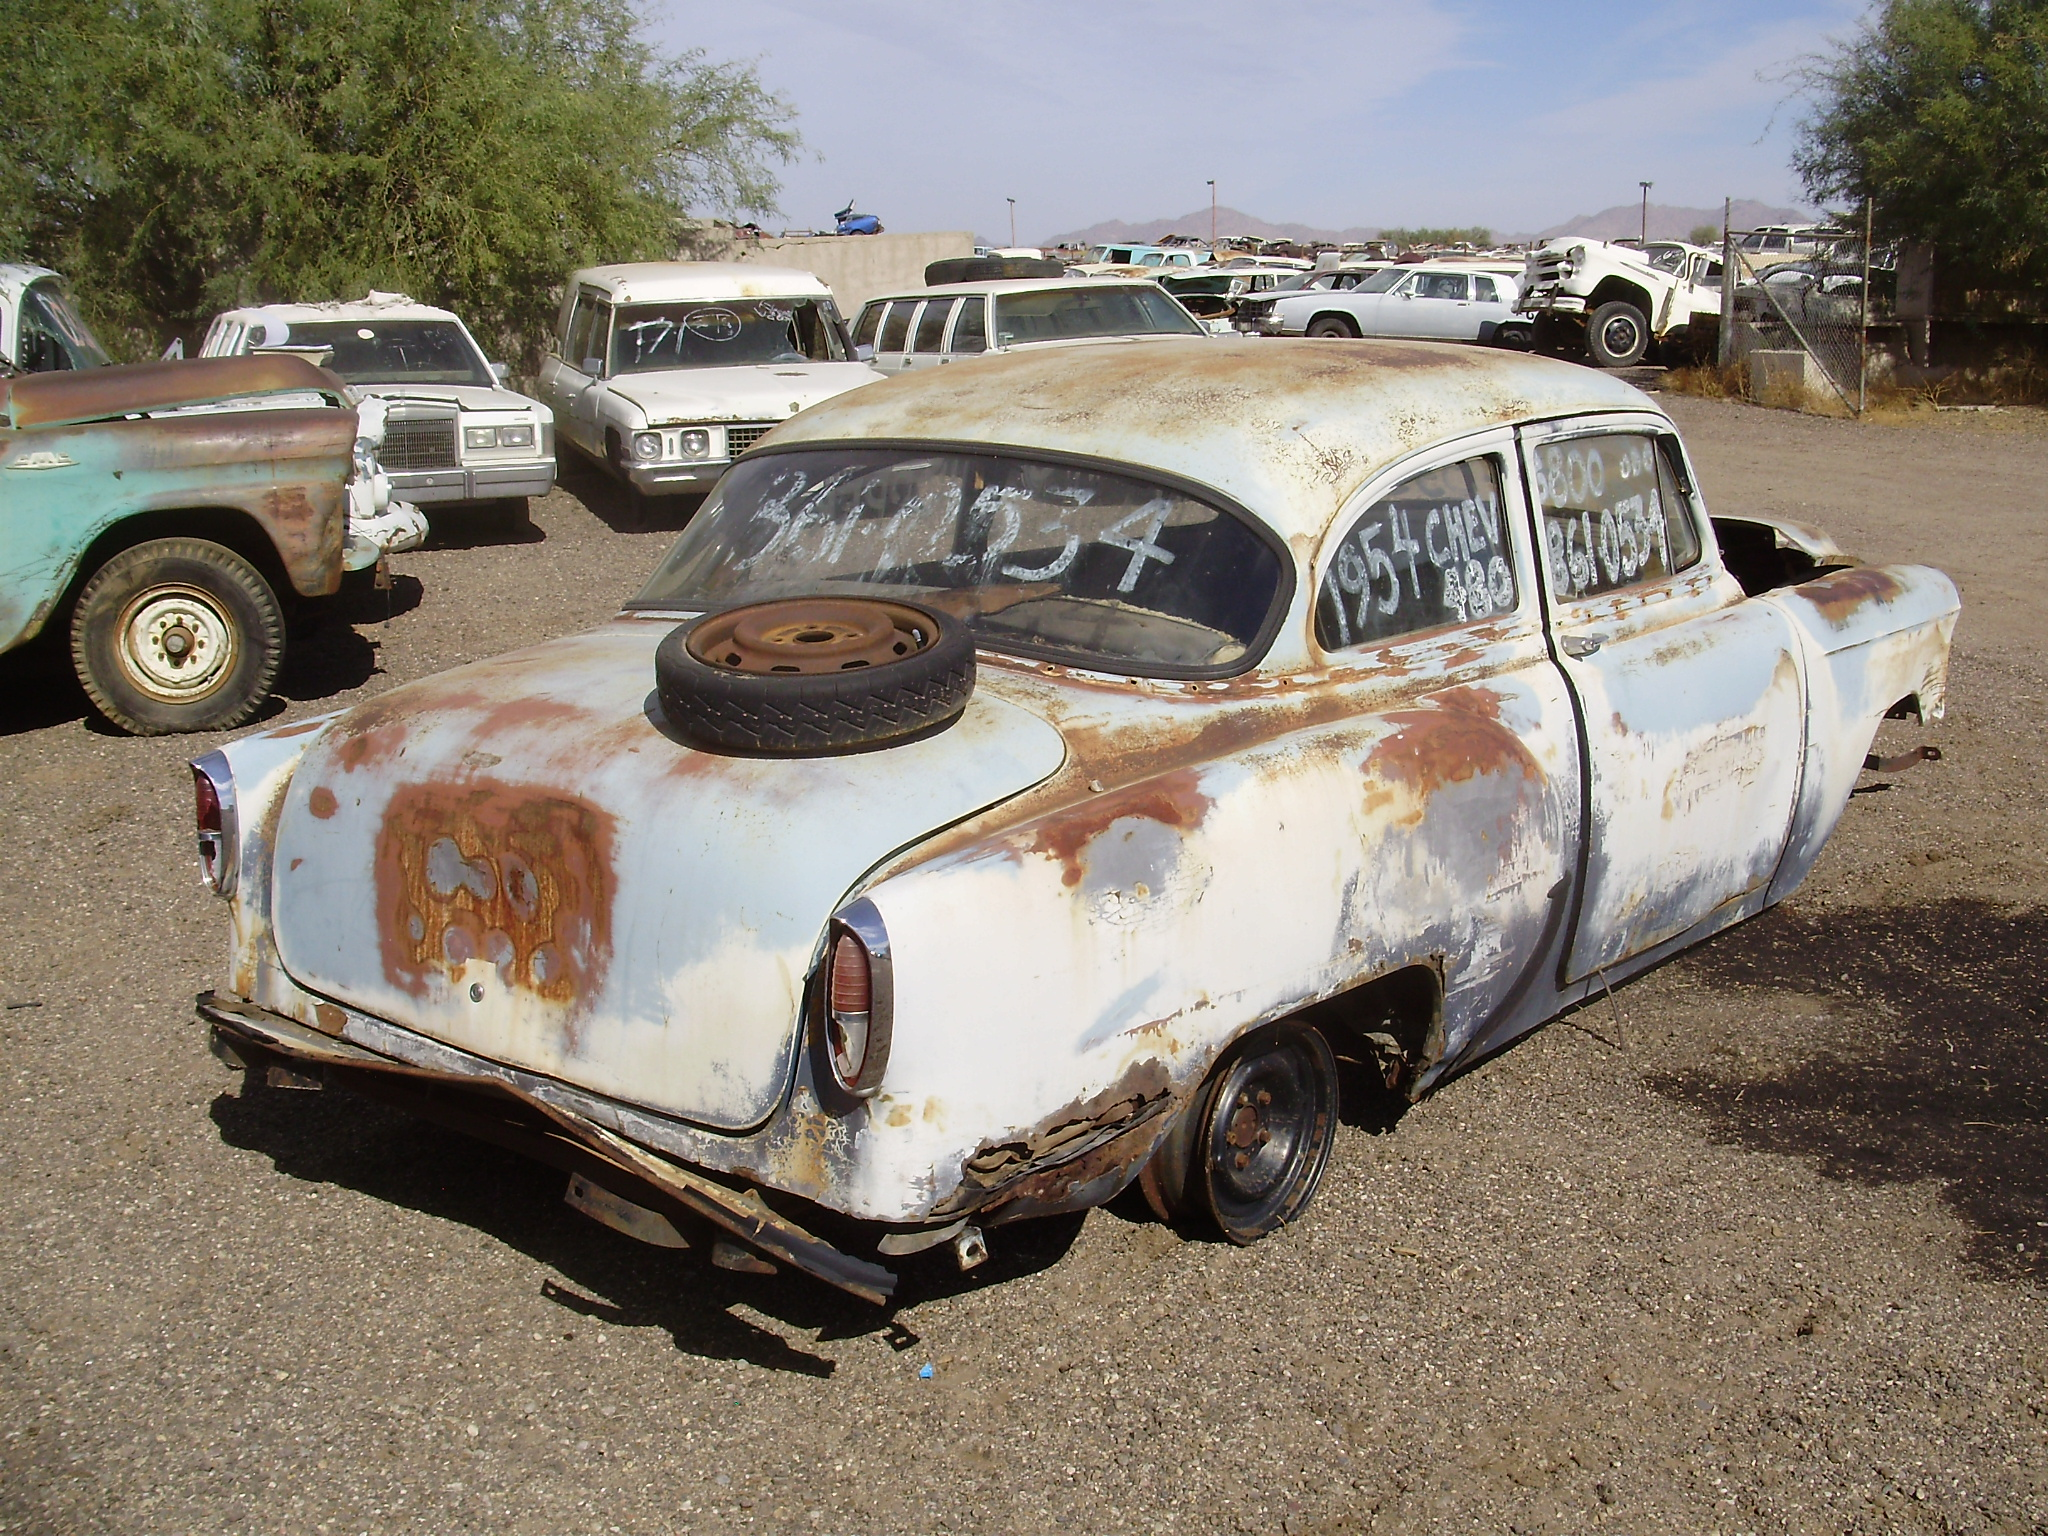 49 54 Chevy Truck For Sale - Car And Truck Parts Store